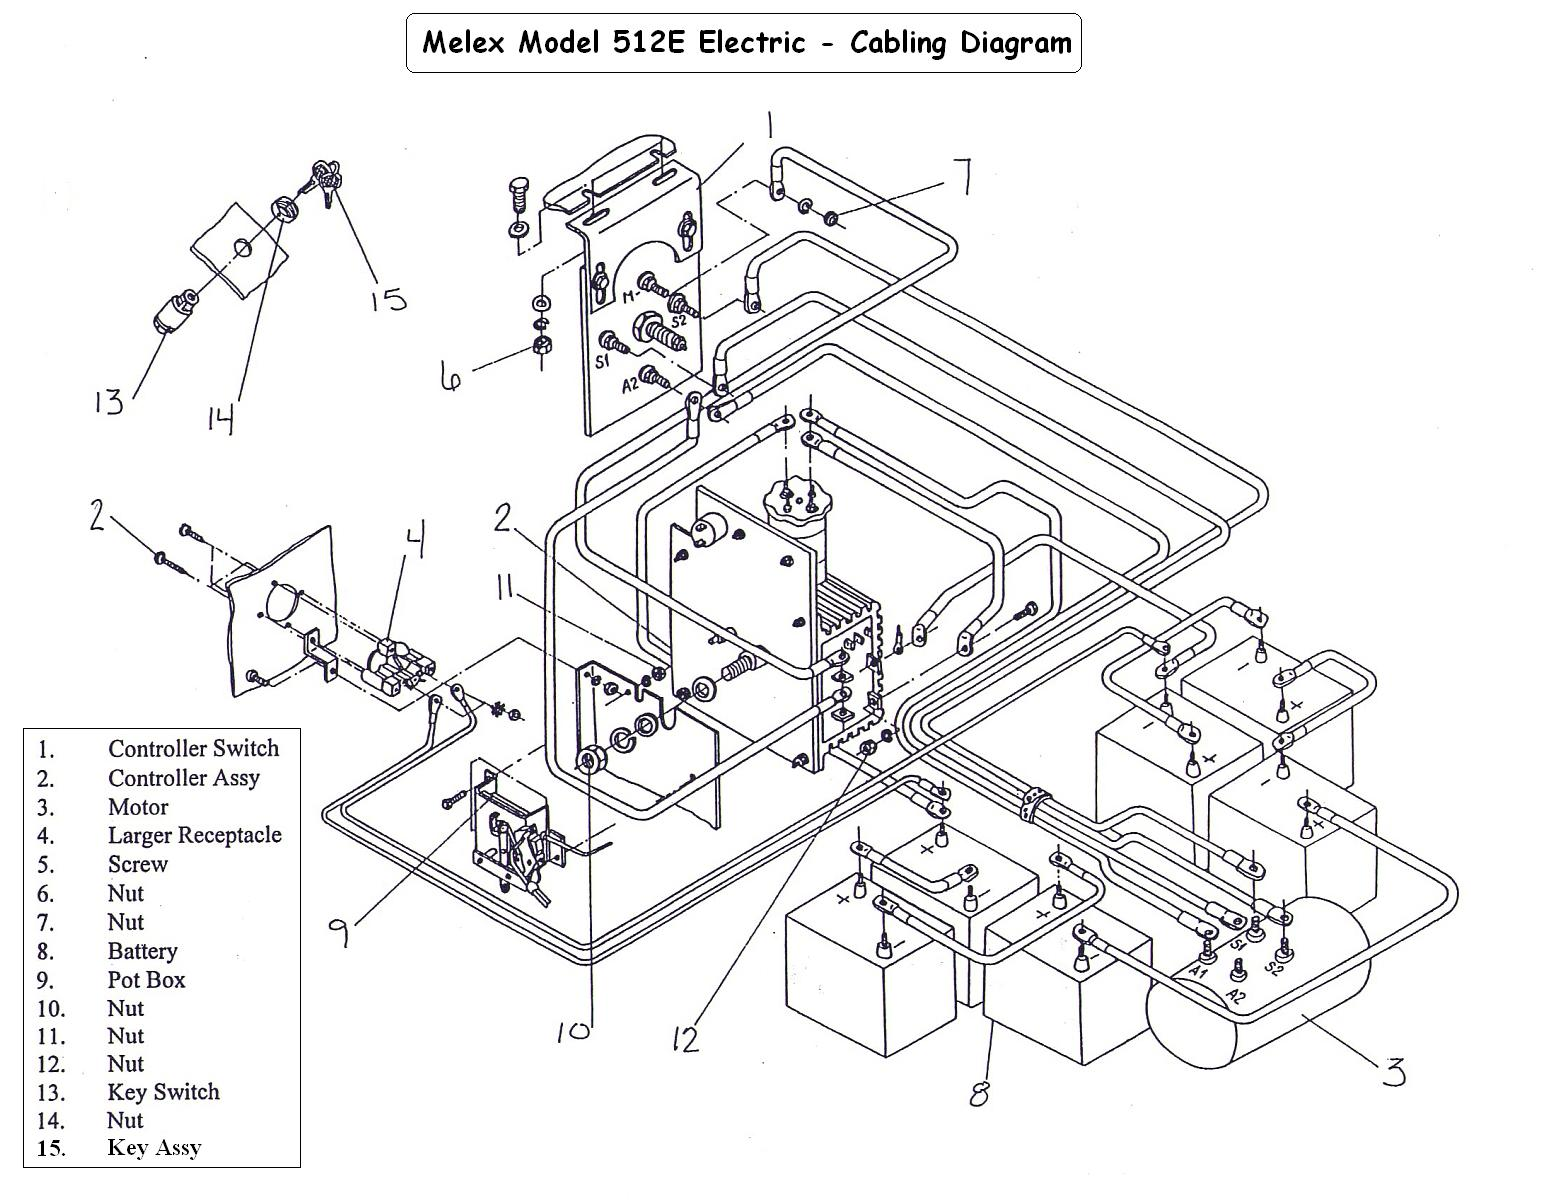 Melex E Cabling Diagram on Hyundai Golf Cart 36 Volt Wiring Diagrams